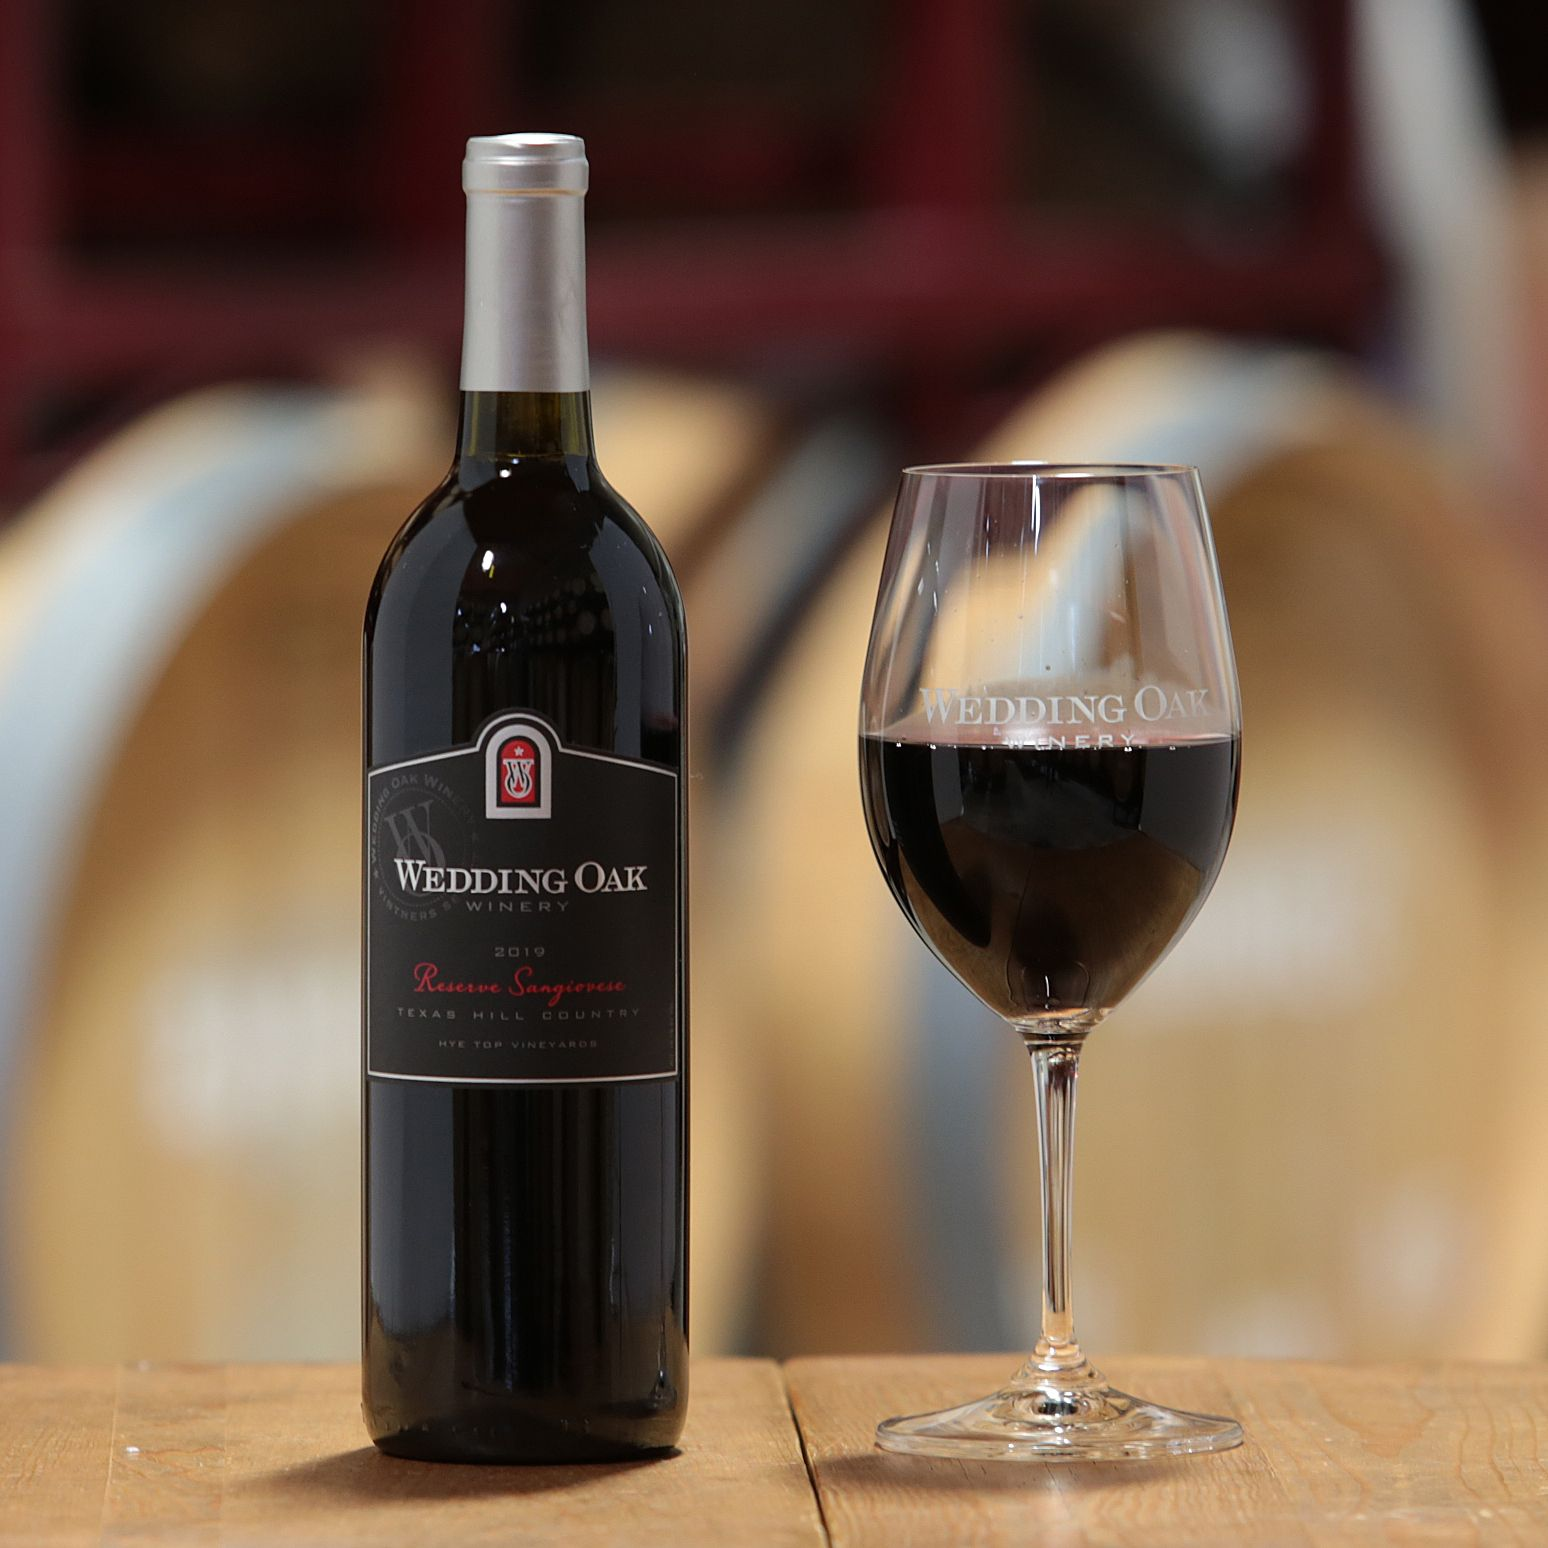 Sangiovese Reserve Texas Hill Country, Hye Top Vineyards 2019